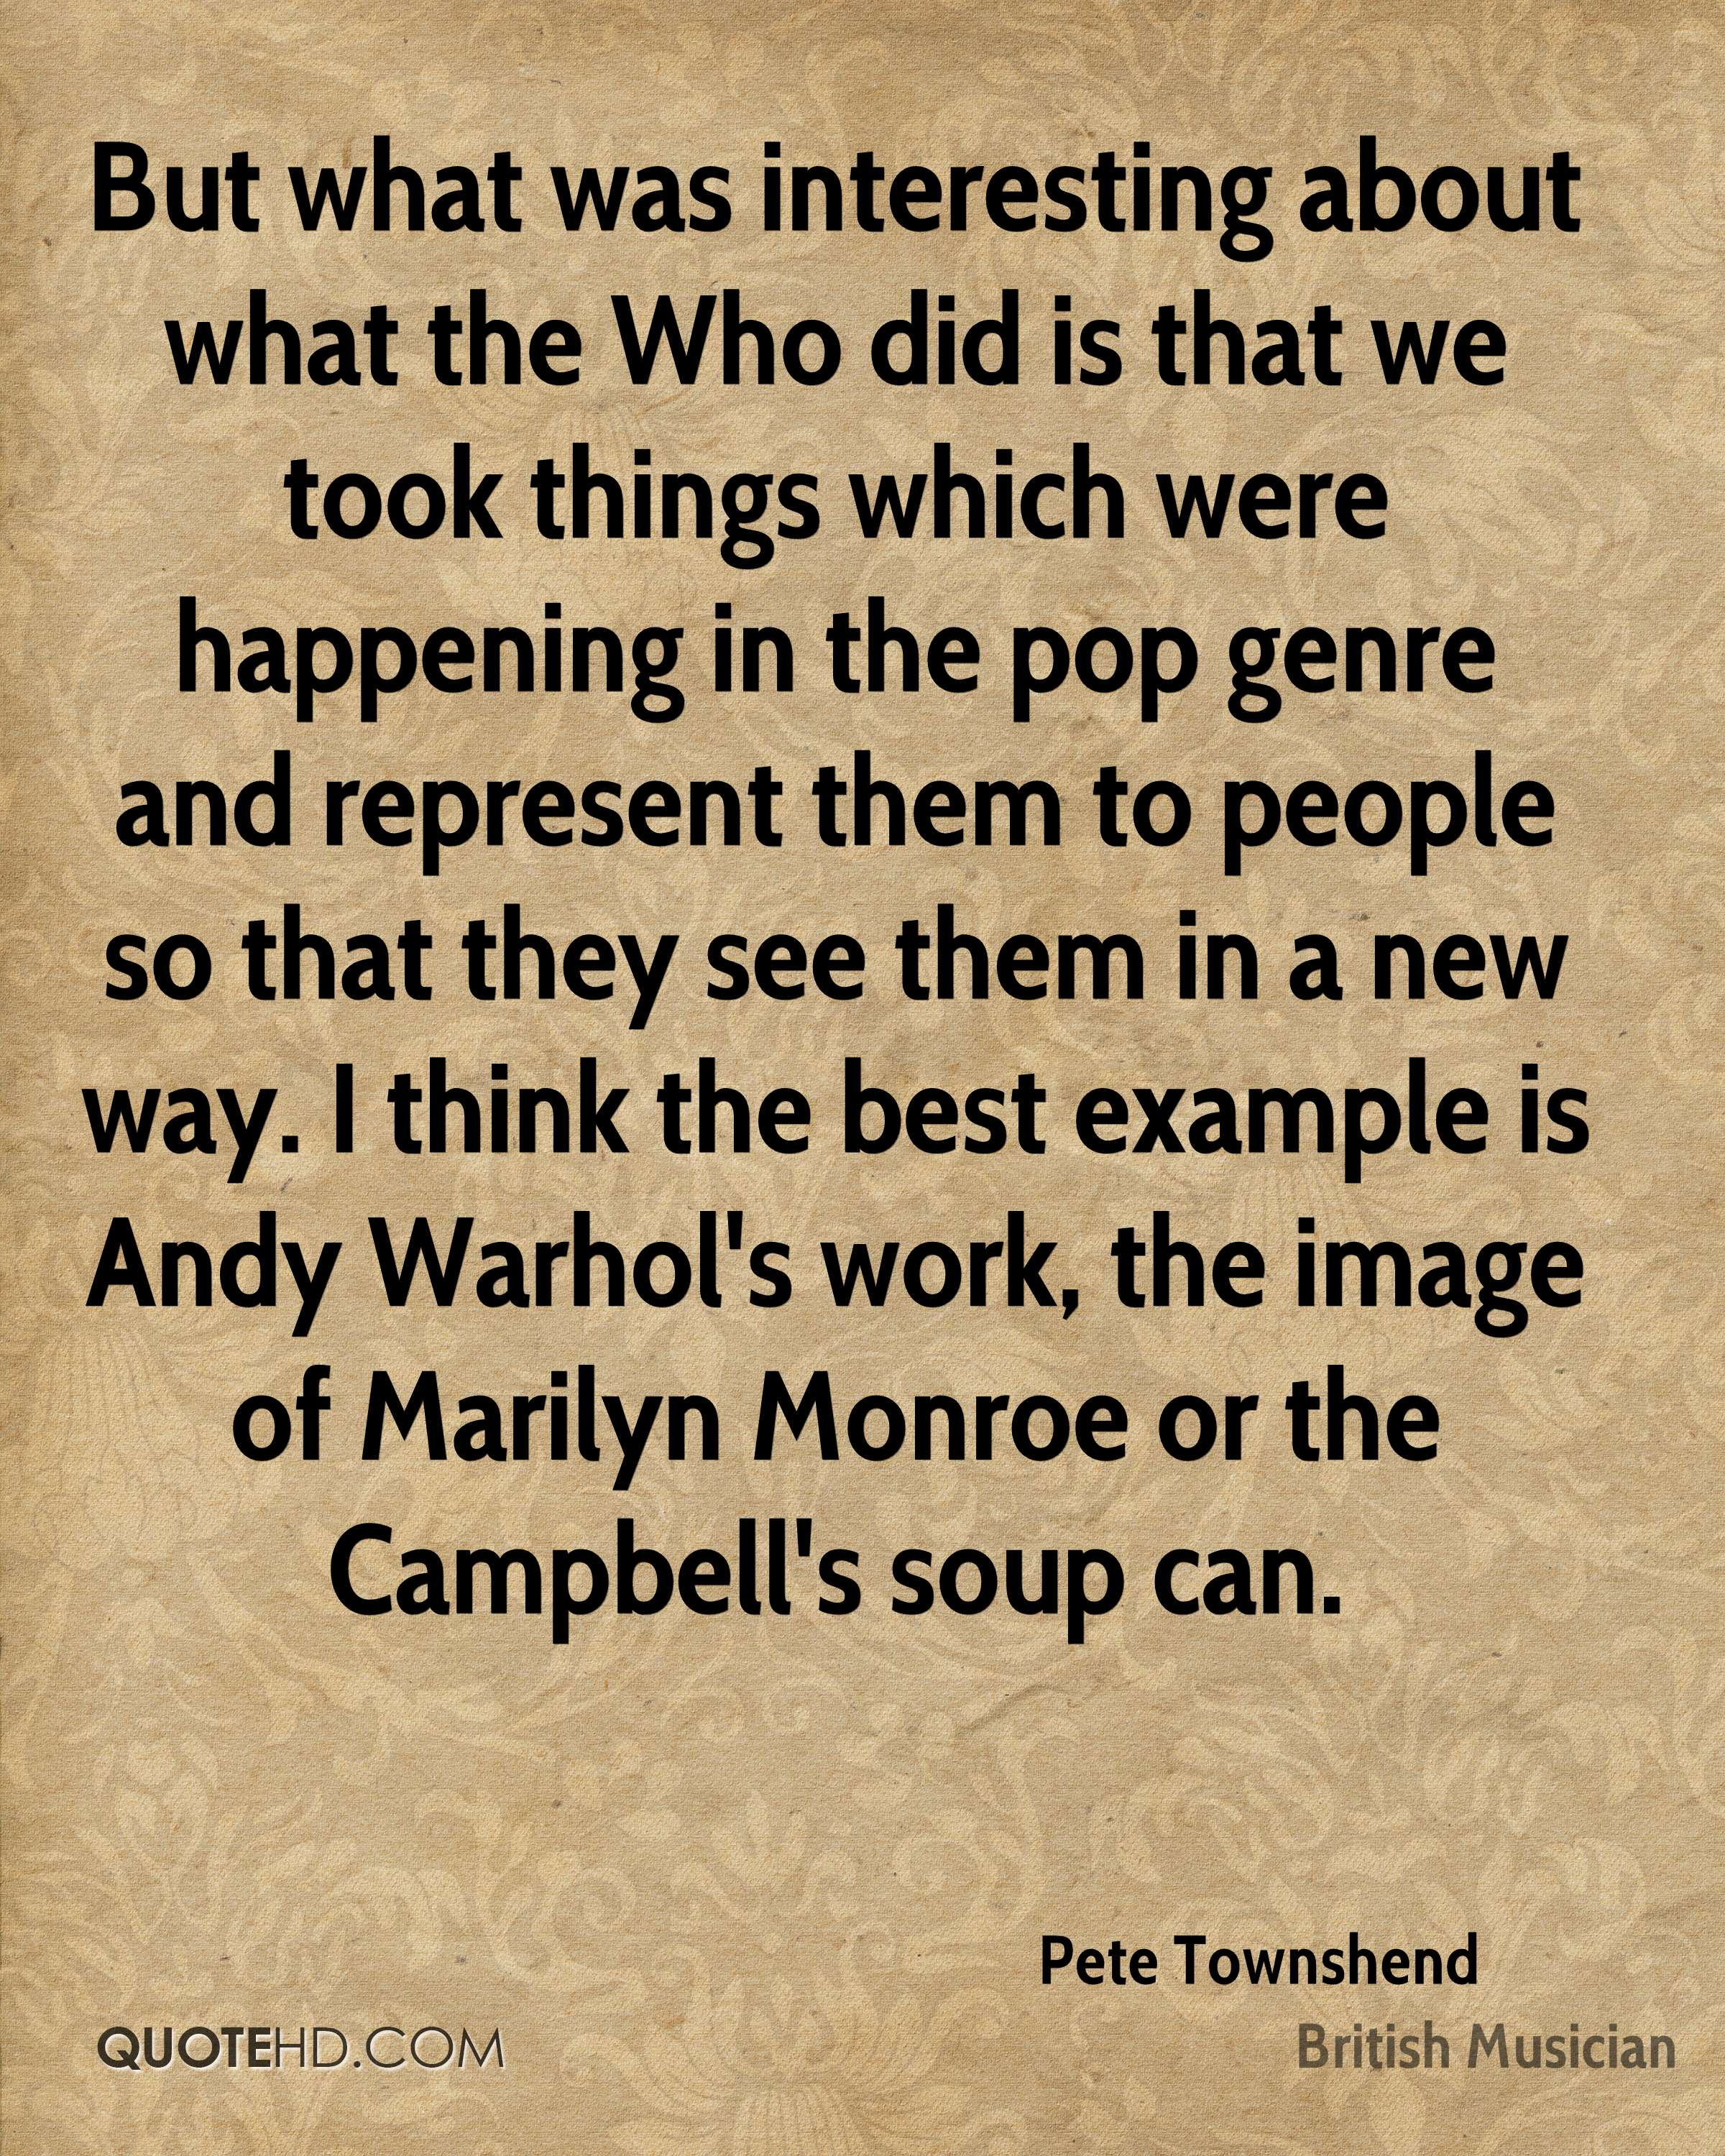 But what was interesting about what the Who did is that we took things which were happening in the pop genre and represent them to people so that they see them in a new way. I think the best example is Andy Warhol's work, the image of Marilyn Monroe or the Campbell's soup can.